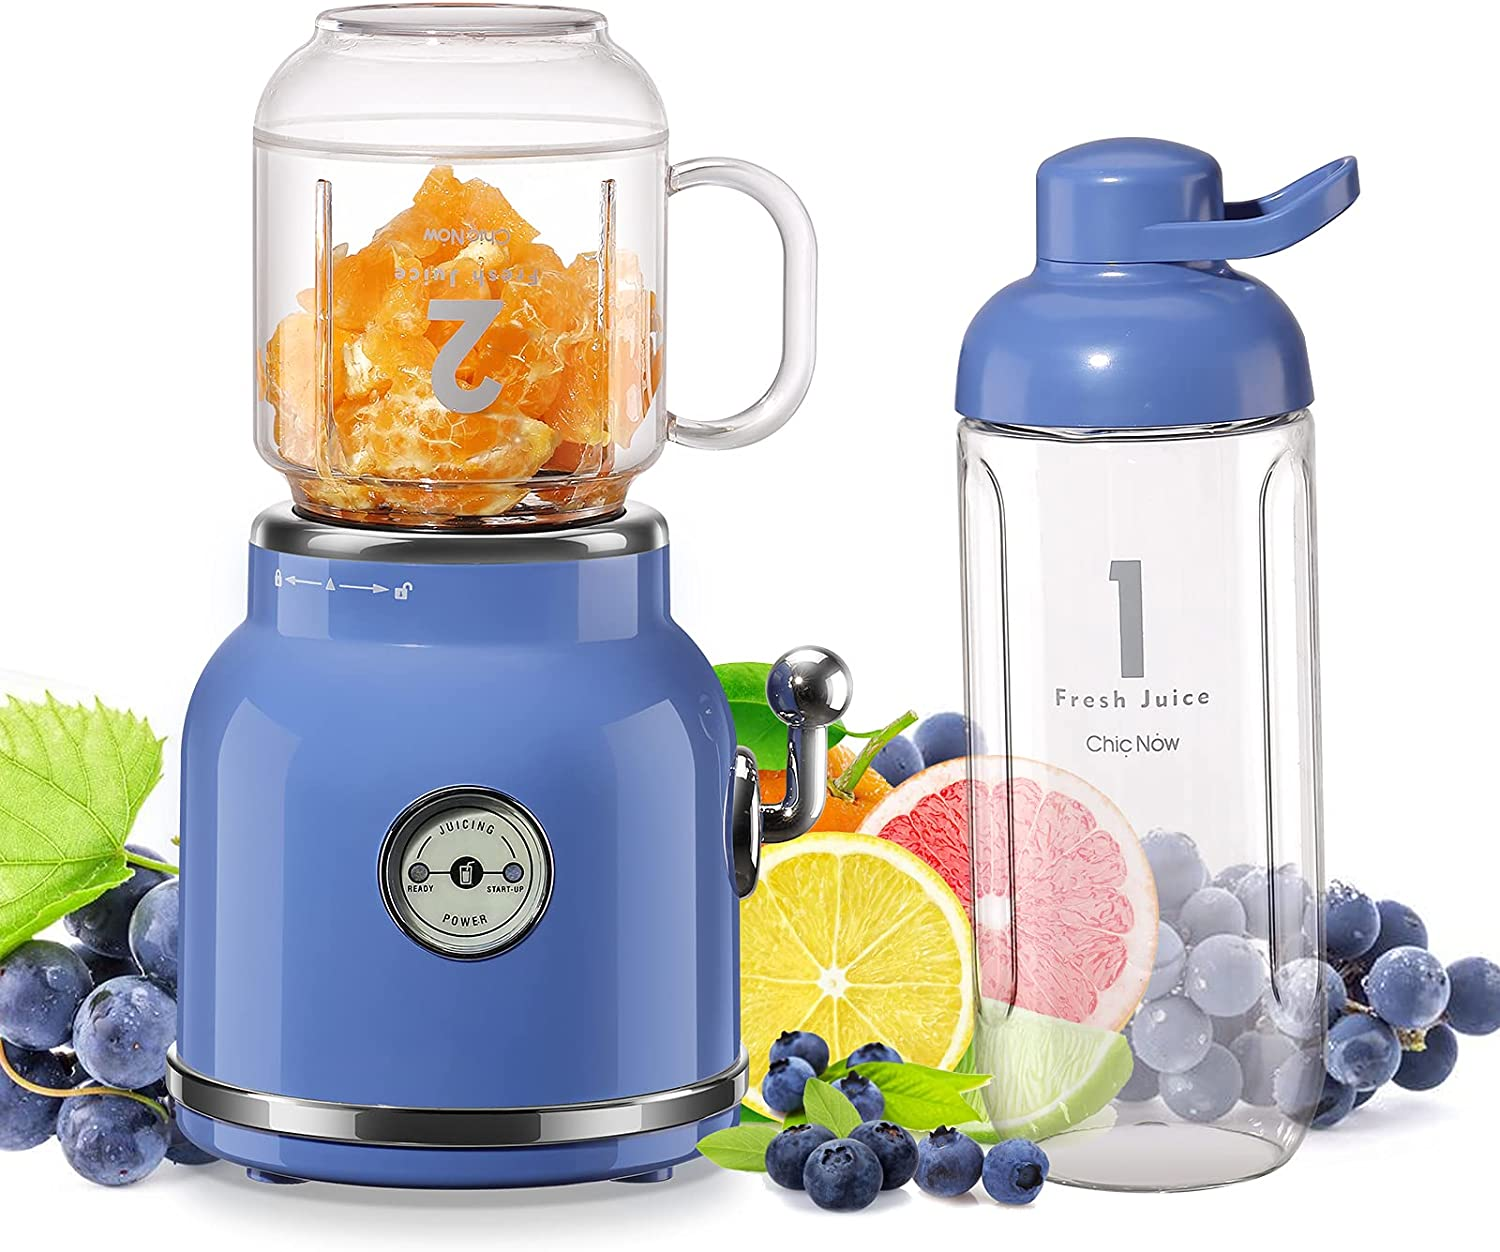 Smoothie Blender, Chic Now Personal Blender for Shakes and Smoothies, Portable Blender with 6 Sharp Blades, 21 oz Portable Cup for Sports Travel and Home, Blue